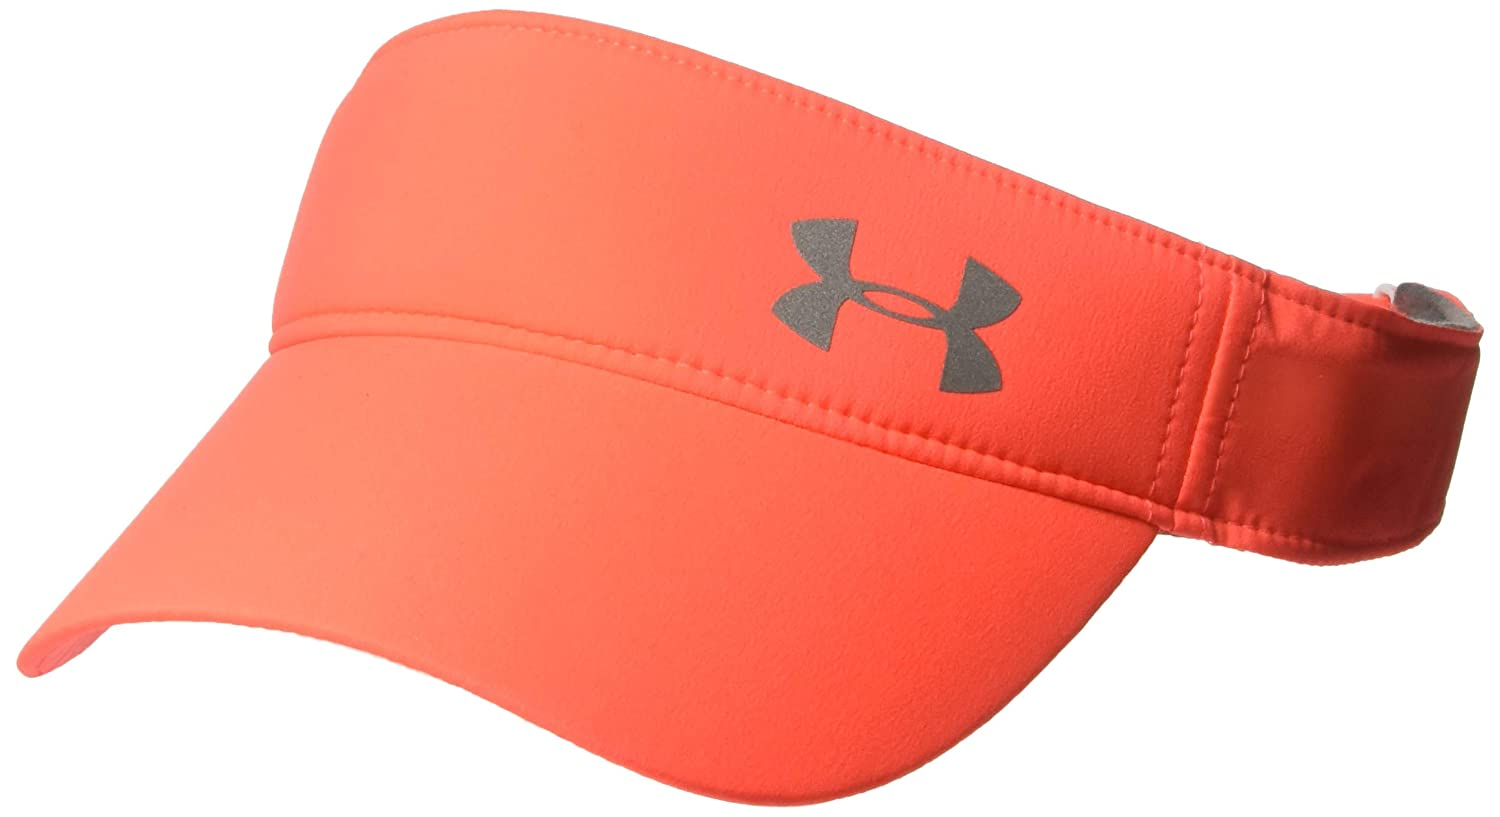 Under Armour Women's Fly-by Visor, Black/Silver, One Size Under Armour Accessories 1306292